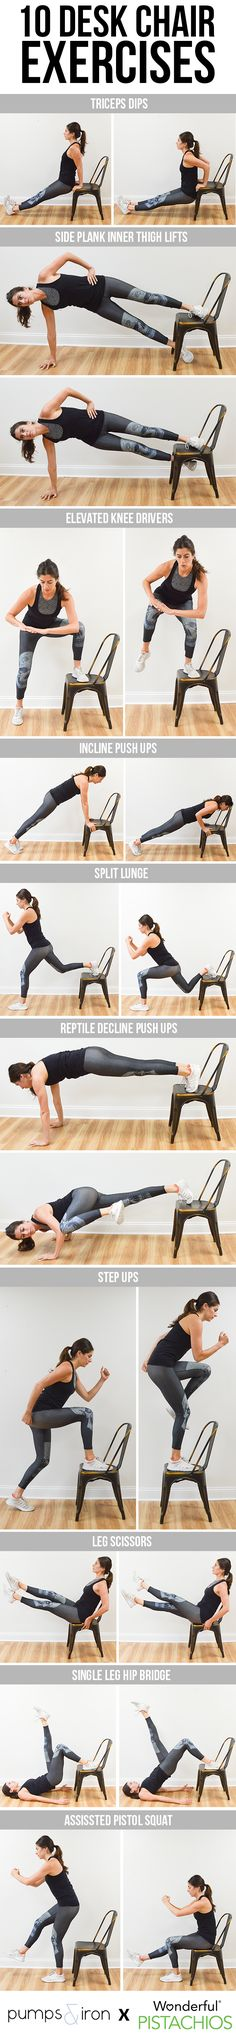 10 Exercises You Can Do with a Desk Chair | Pumps & Iron